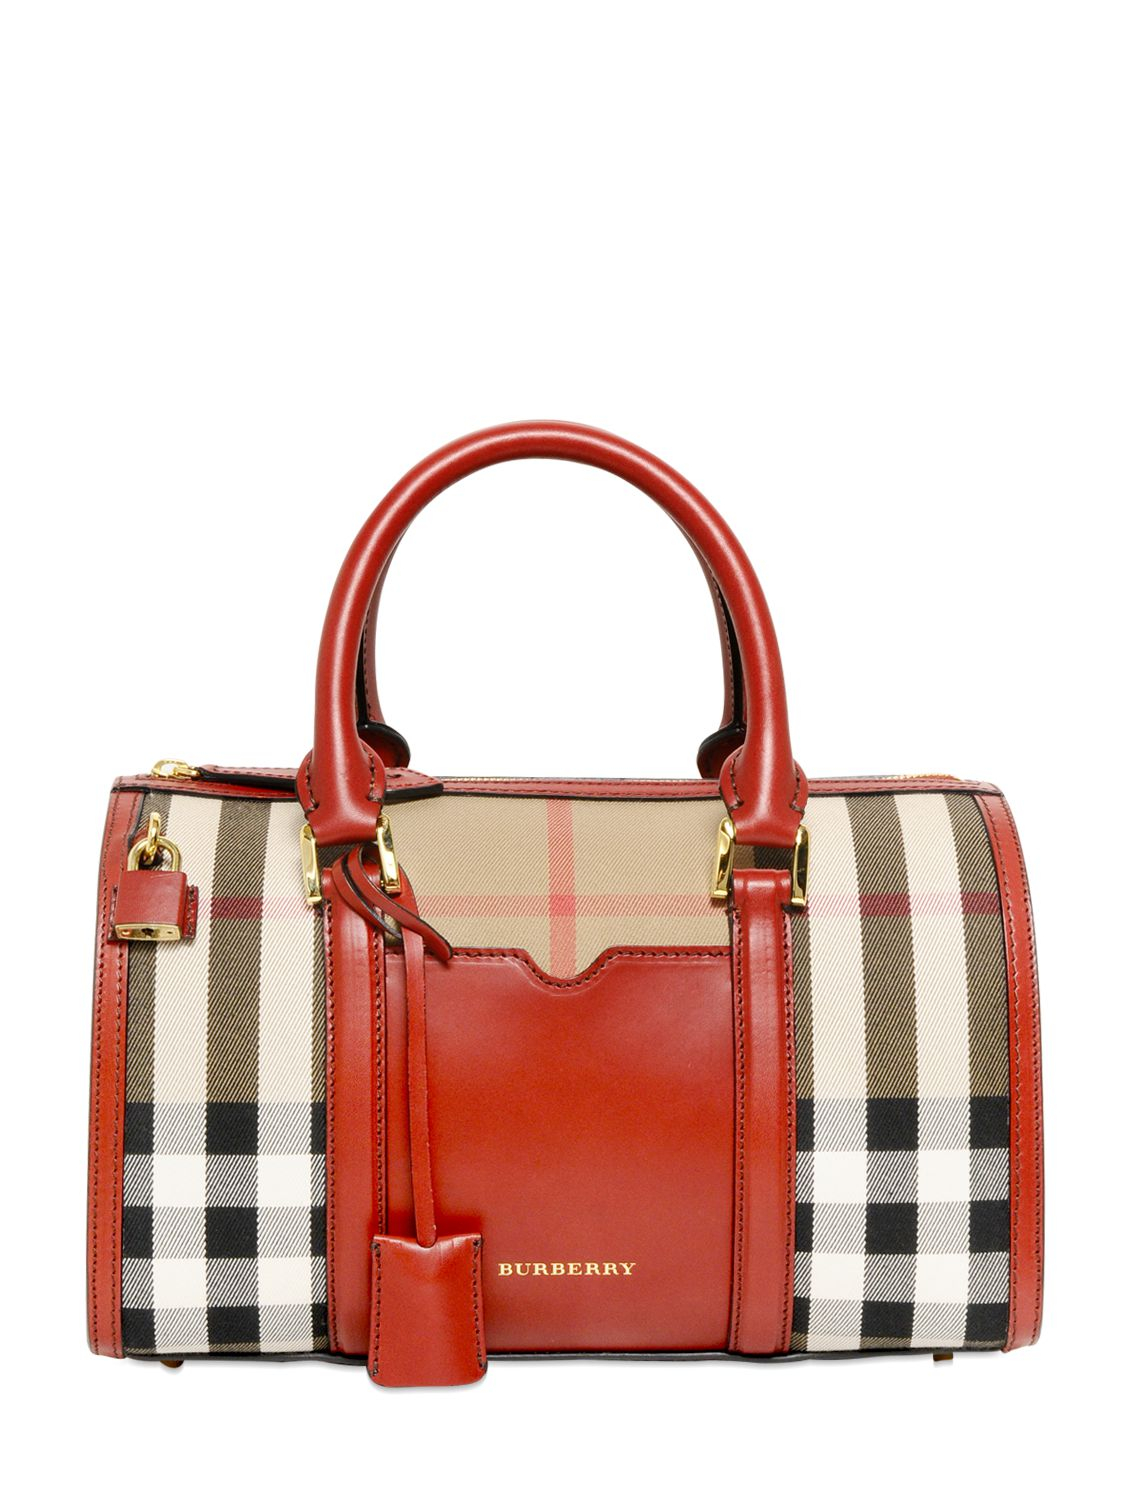 Lyst - Burberry Medium Alchester Bridle House Check Bag in Red fcc4549655fcc